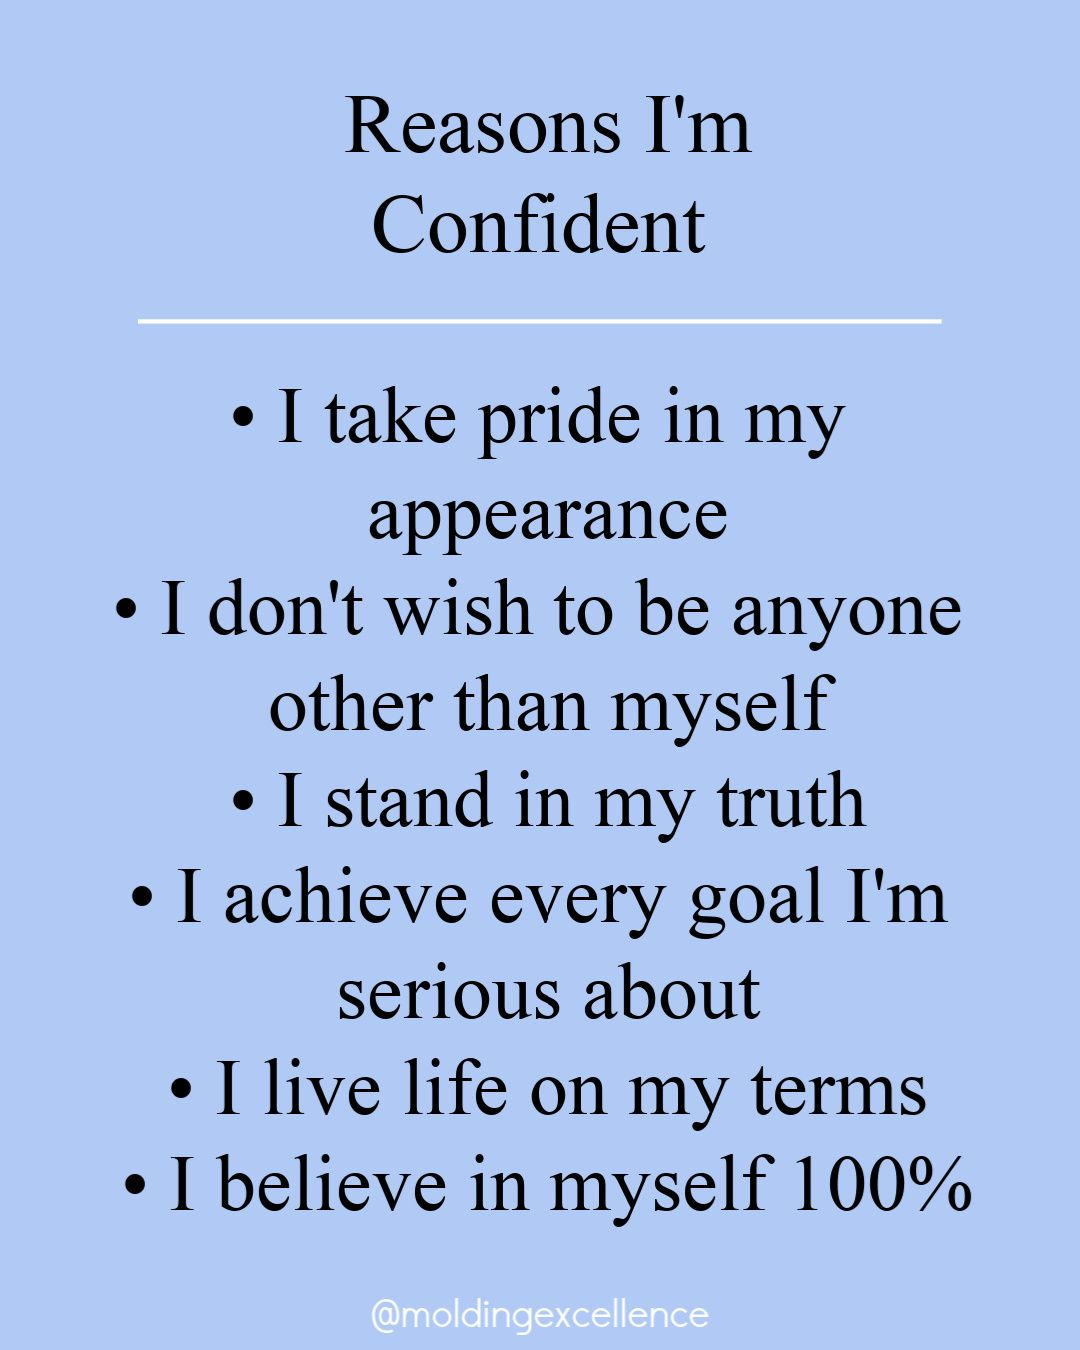 Confidence Building Quotes 2020 | Confidence Quotes for Teenagers